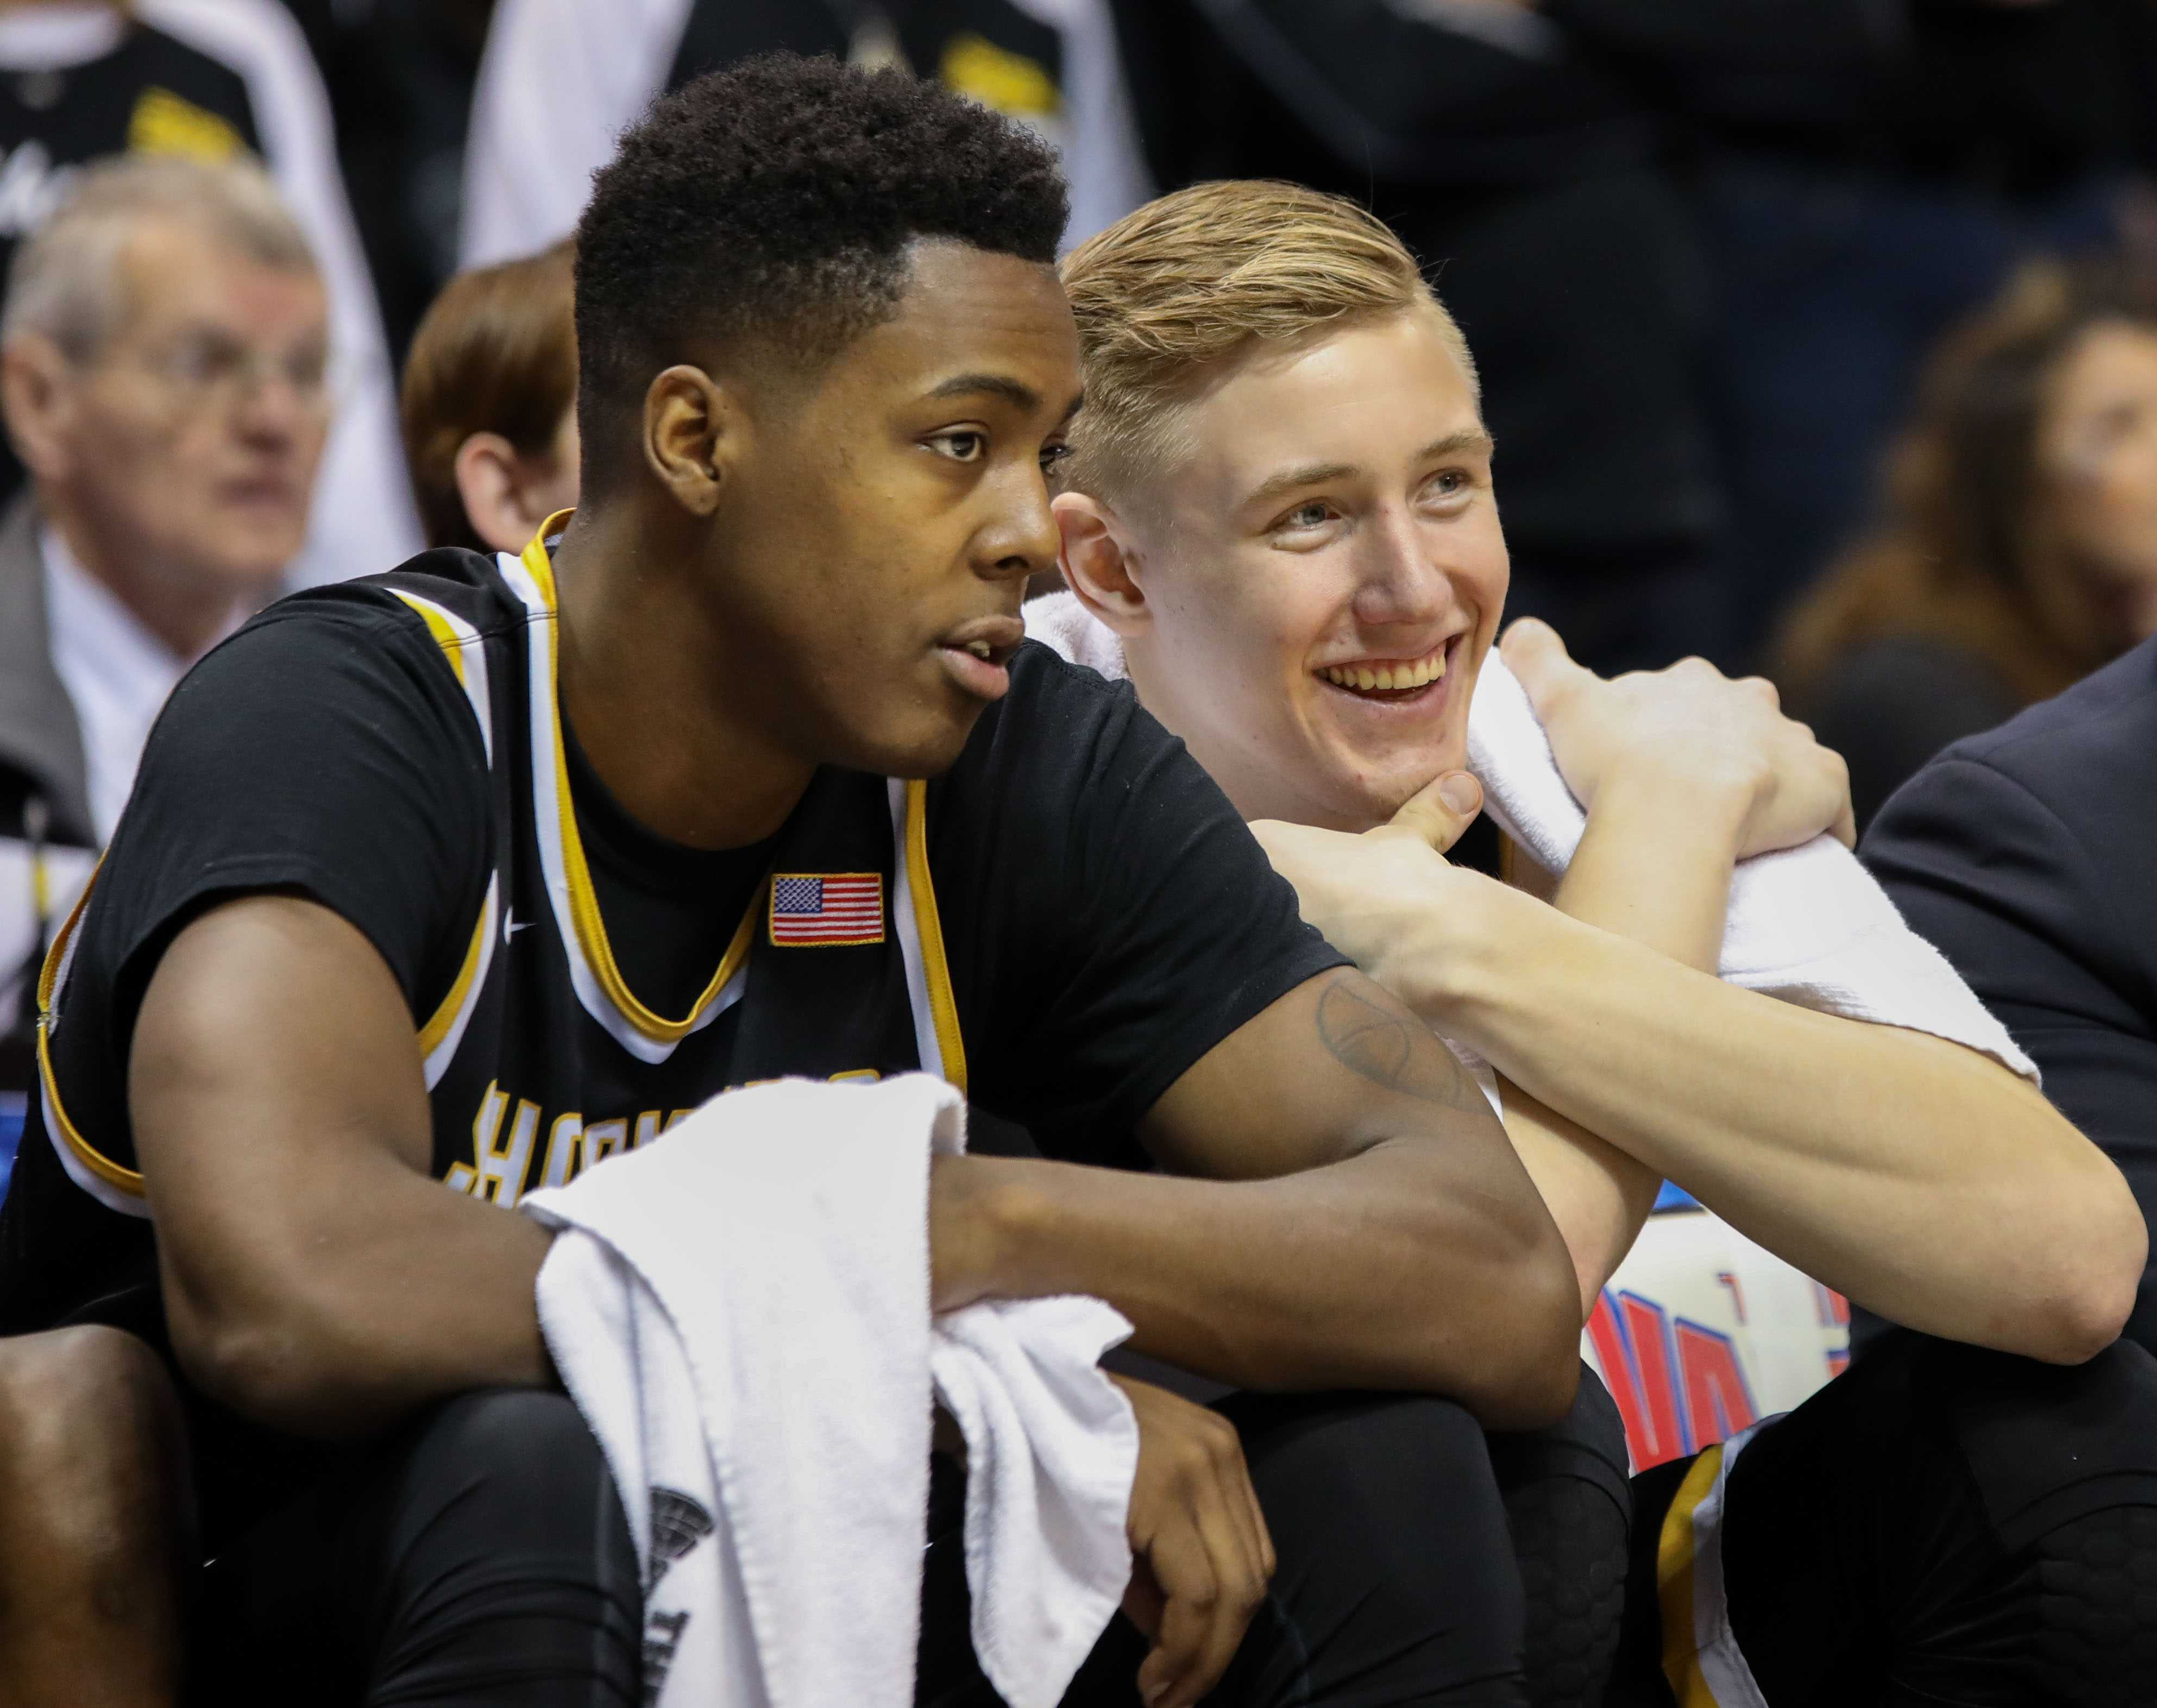 Wichita State's Darral Willis (21) and Rauno Nurger (20) sit on the bench. Nurger grins, realizing Wichita State is going to win.